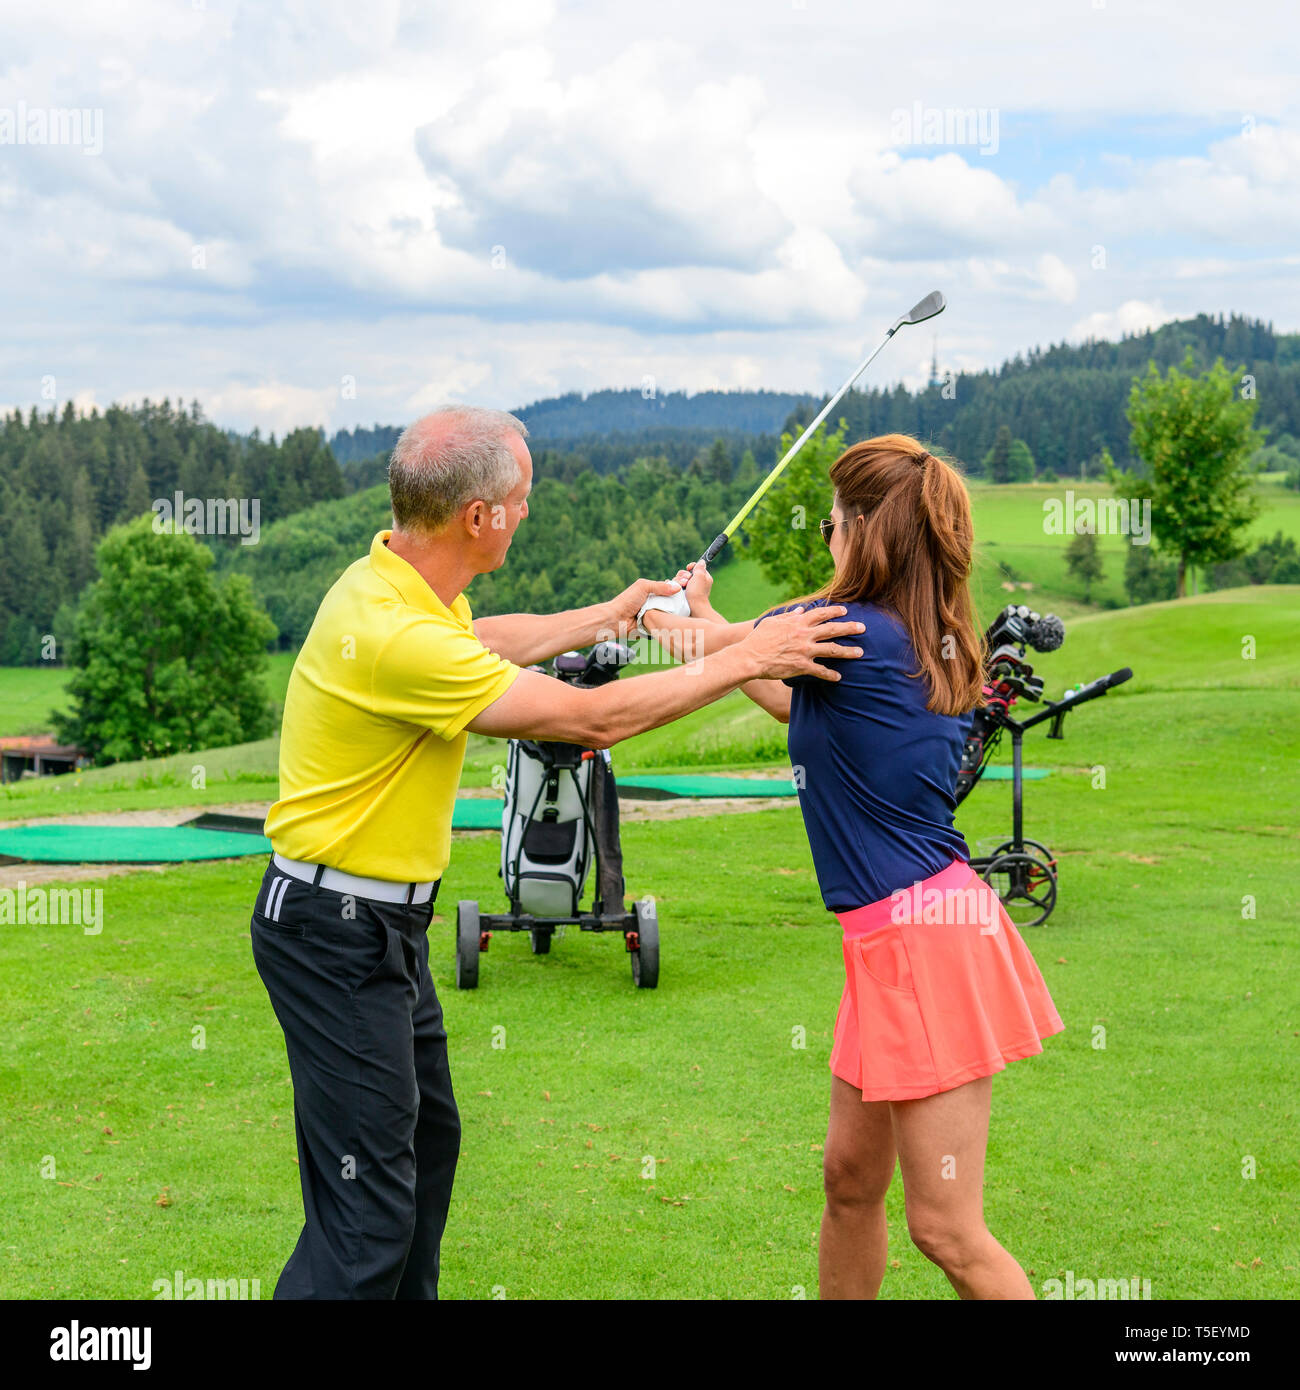 Golf players practising with golf pro on drivingrange - Stock Image